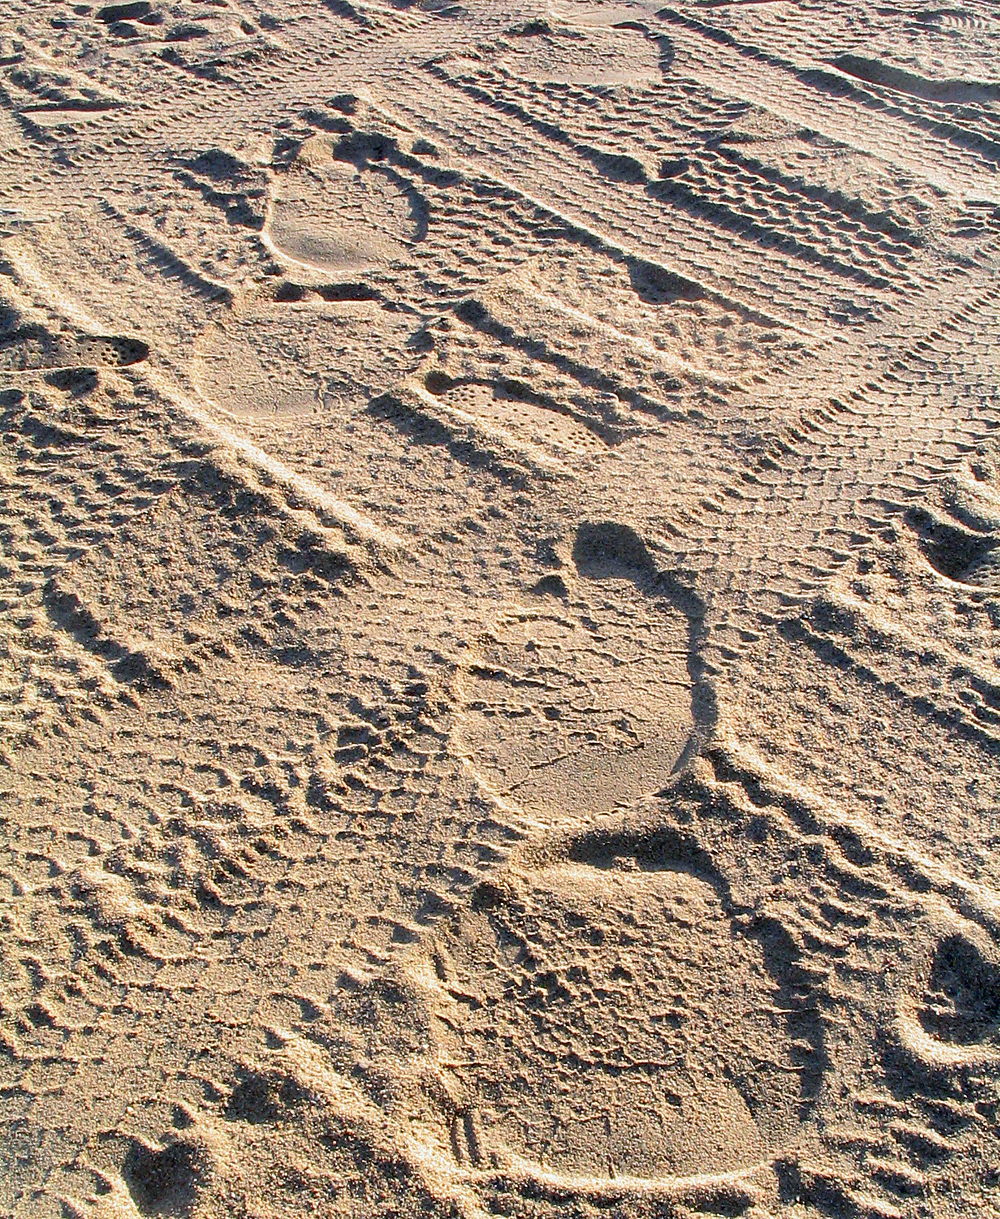 Animal Tracking Quiz, Question 6 - Can you identify this animal track?